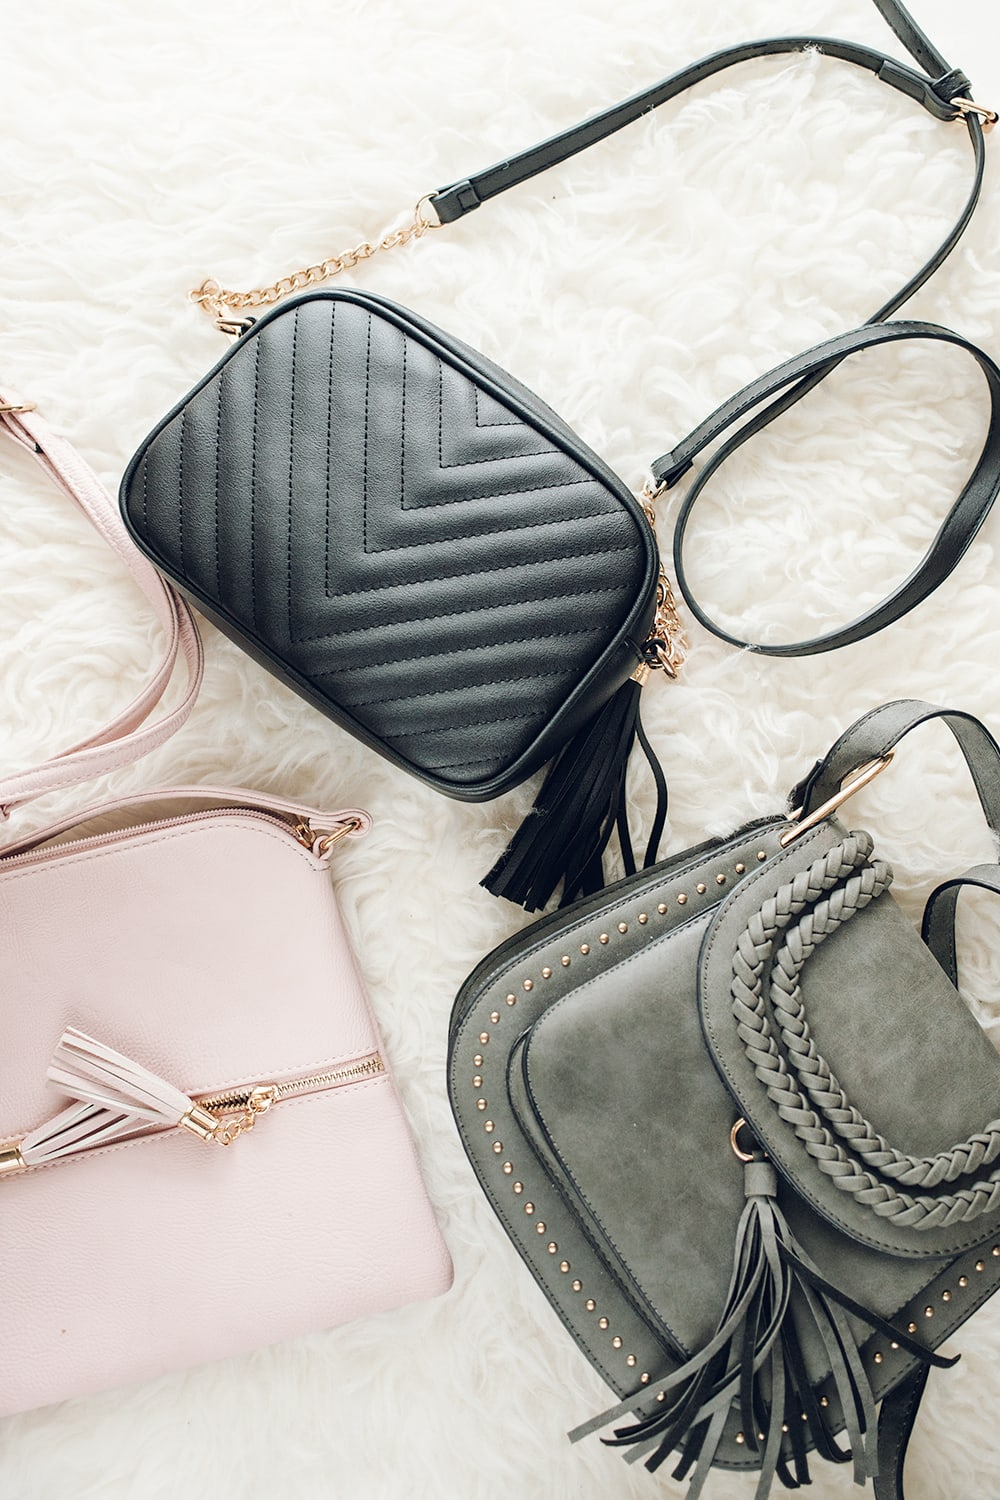 Houston lifestyle blogger Meg O. shares 5 cute and cheap Amazon purses - all under $40!